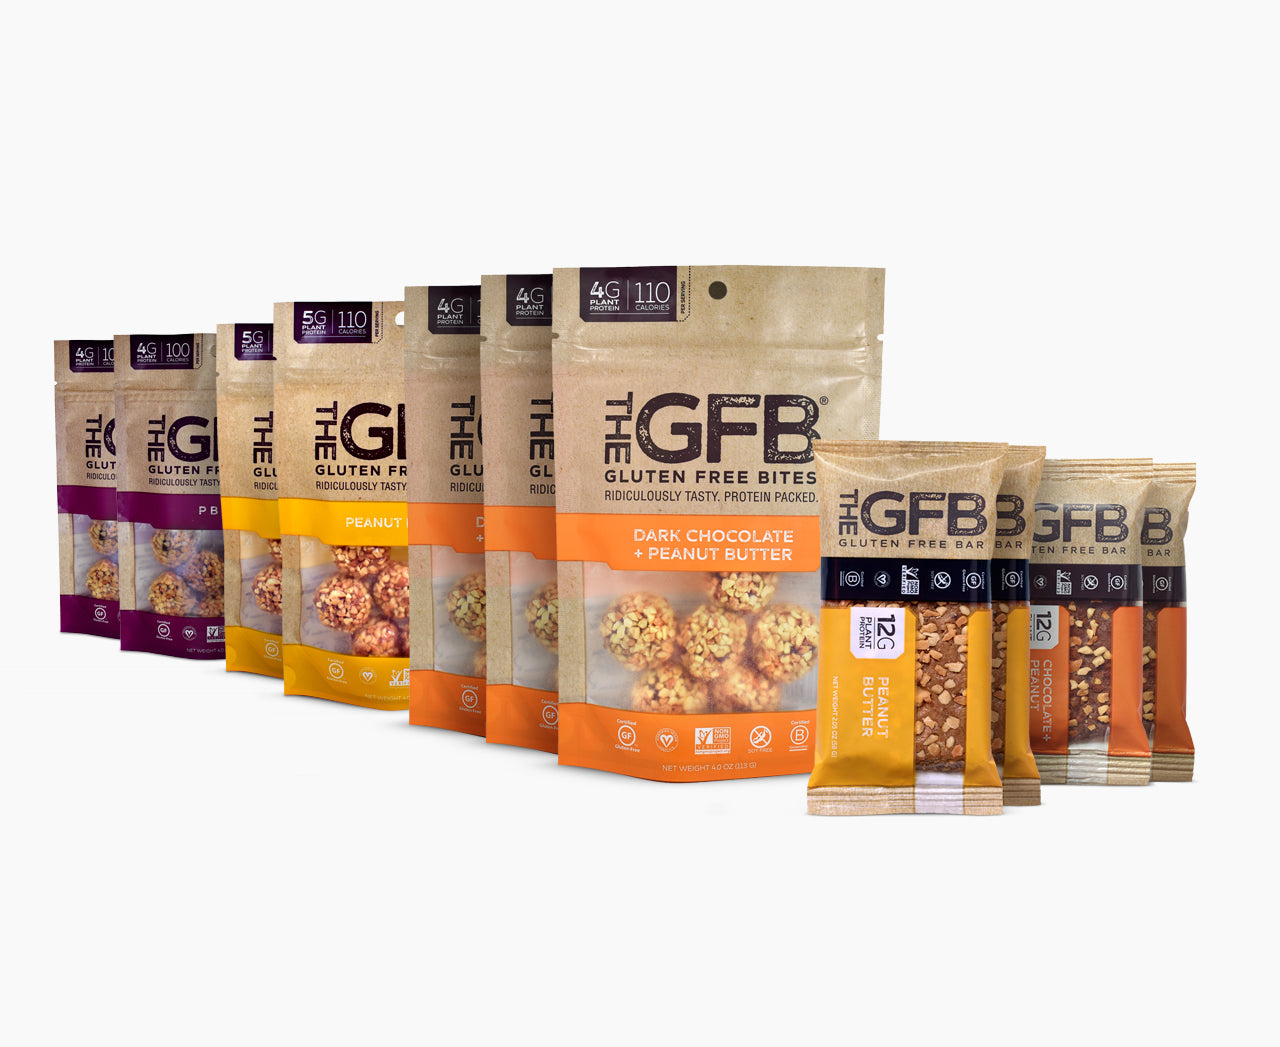 GFB Sampler Pack: Peanut Lovers - The GFB - The Gluten Free Bar